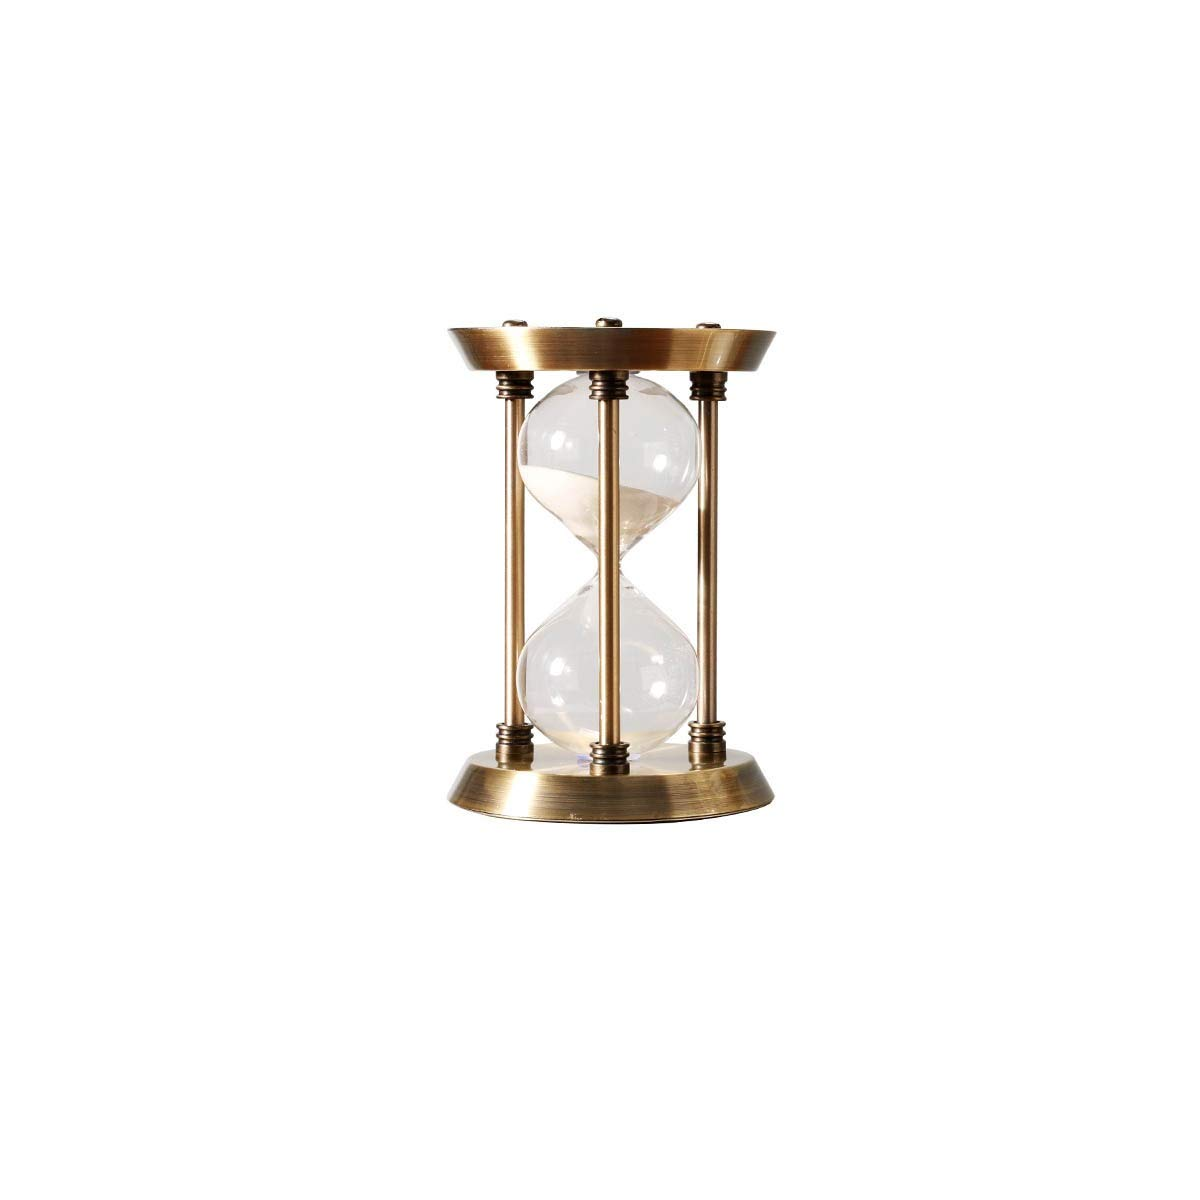 QINRUIKUANGSHAN Hourglass Countdown Timer Nordic Decoration Creative Study Room Decoration Wine Cabinet Display Glass Products Crafts Copper Color 300 Points Two (Color : Bronze, Edition : B) by QINRUIKUANGSHAN